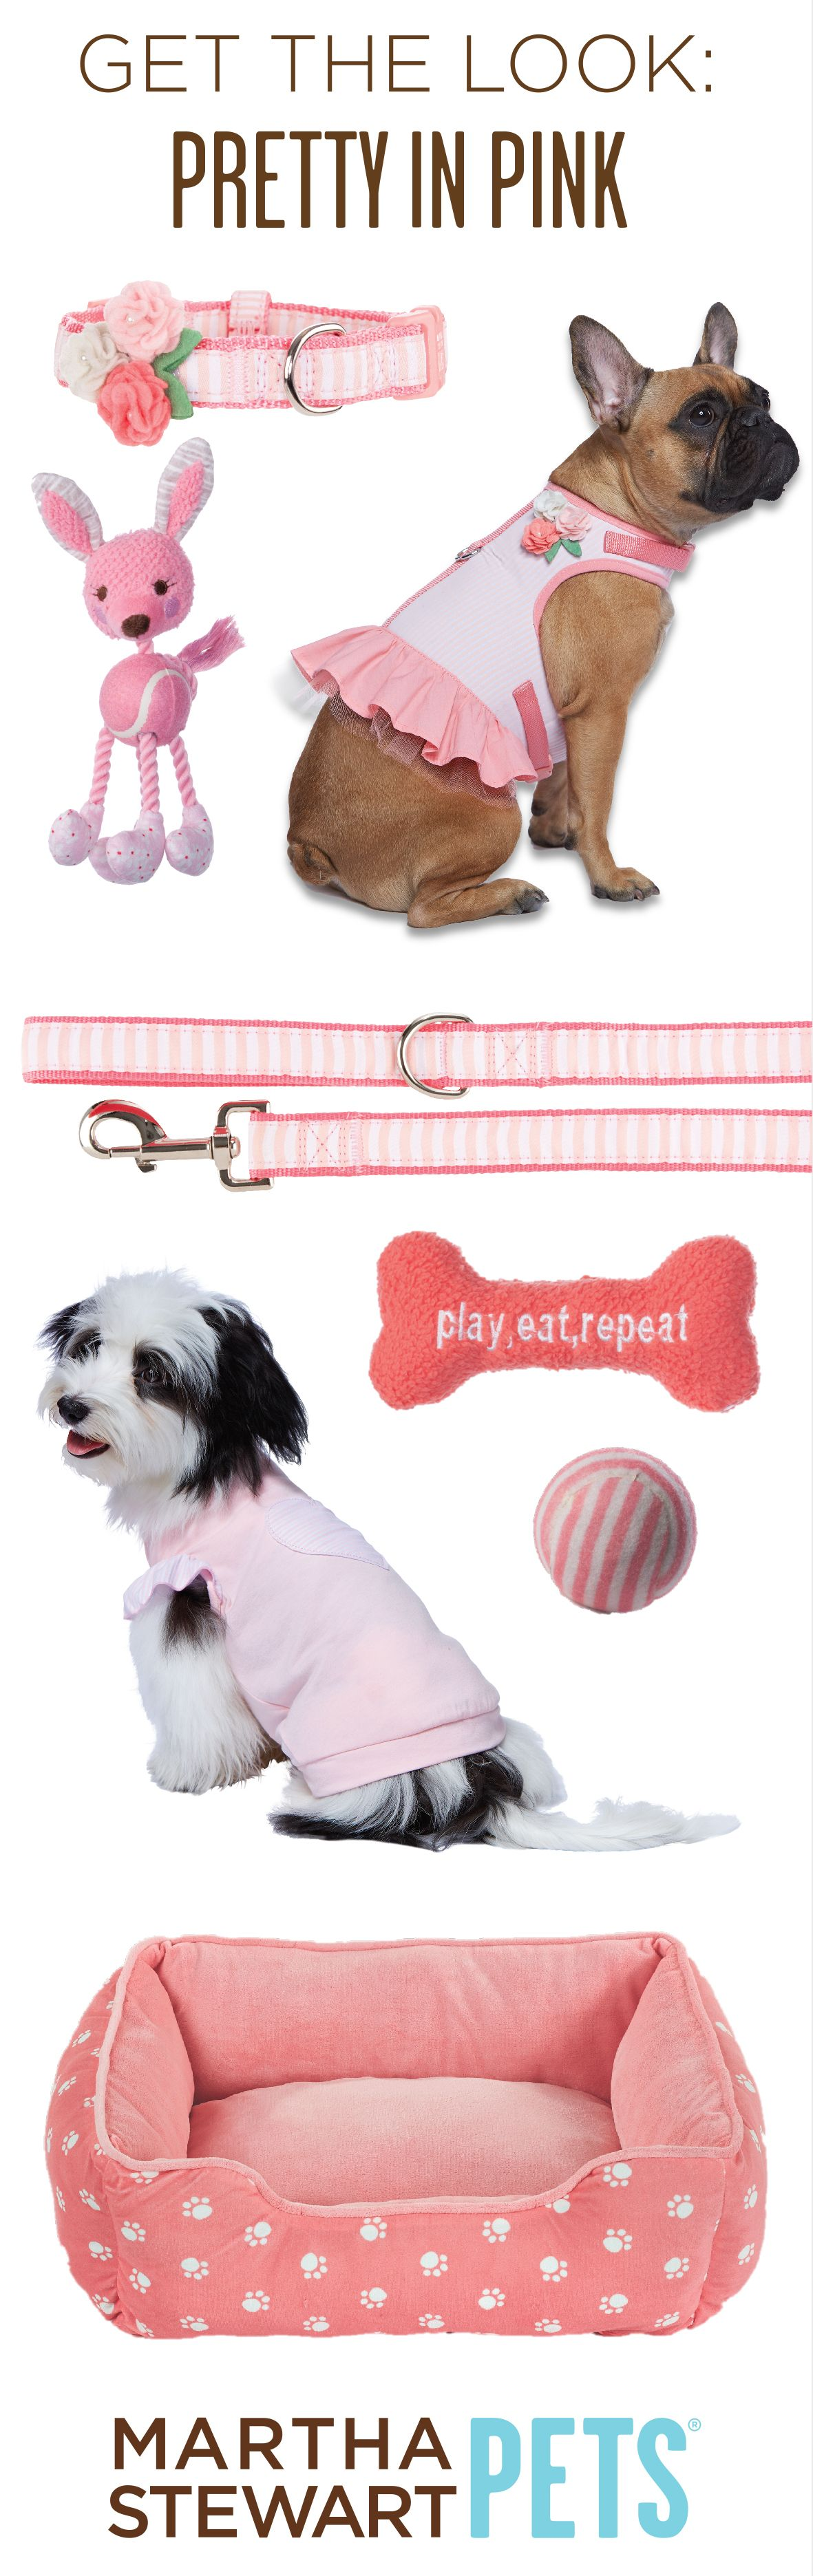 Get the Look Pretty in Pink with MarthaStewartPets! Only